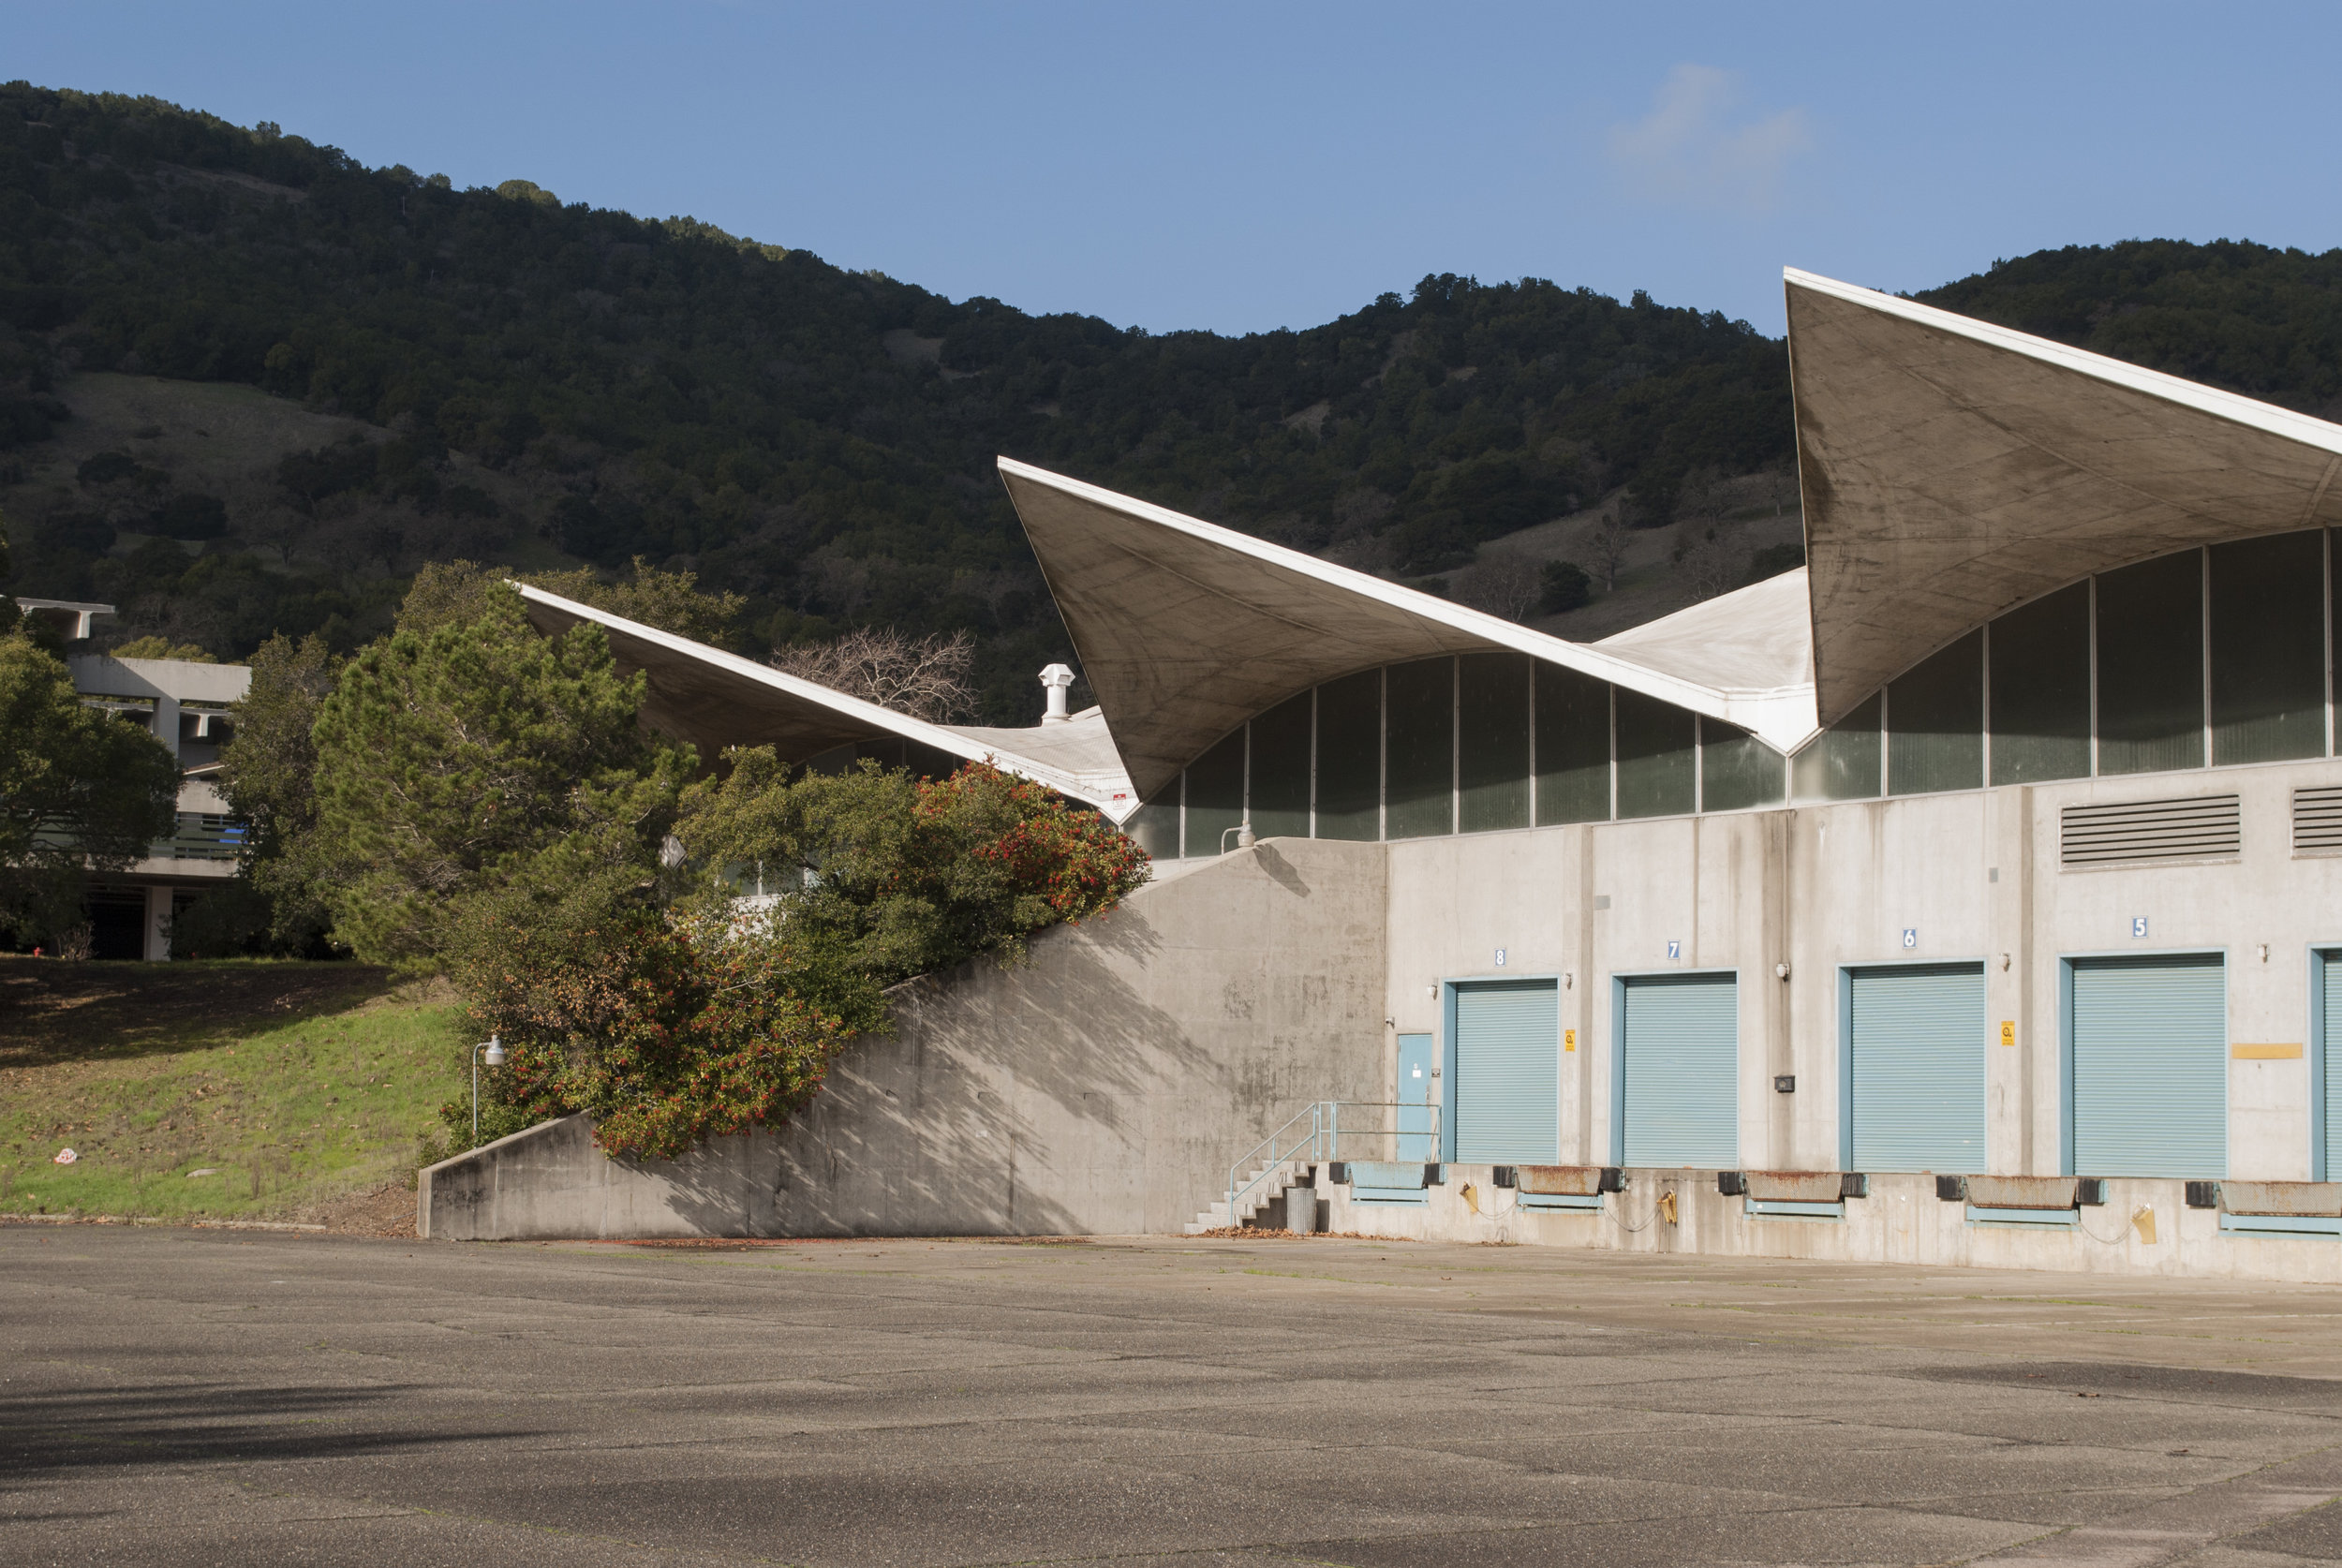 McGraw-Hill Distribution Center, Novato, CA